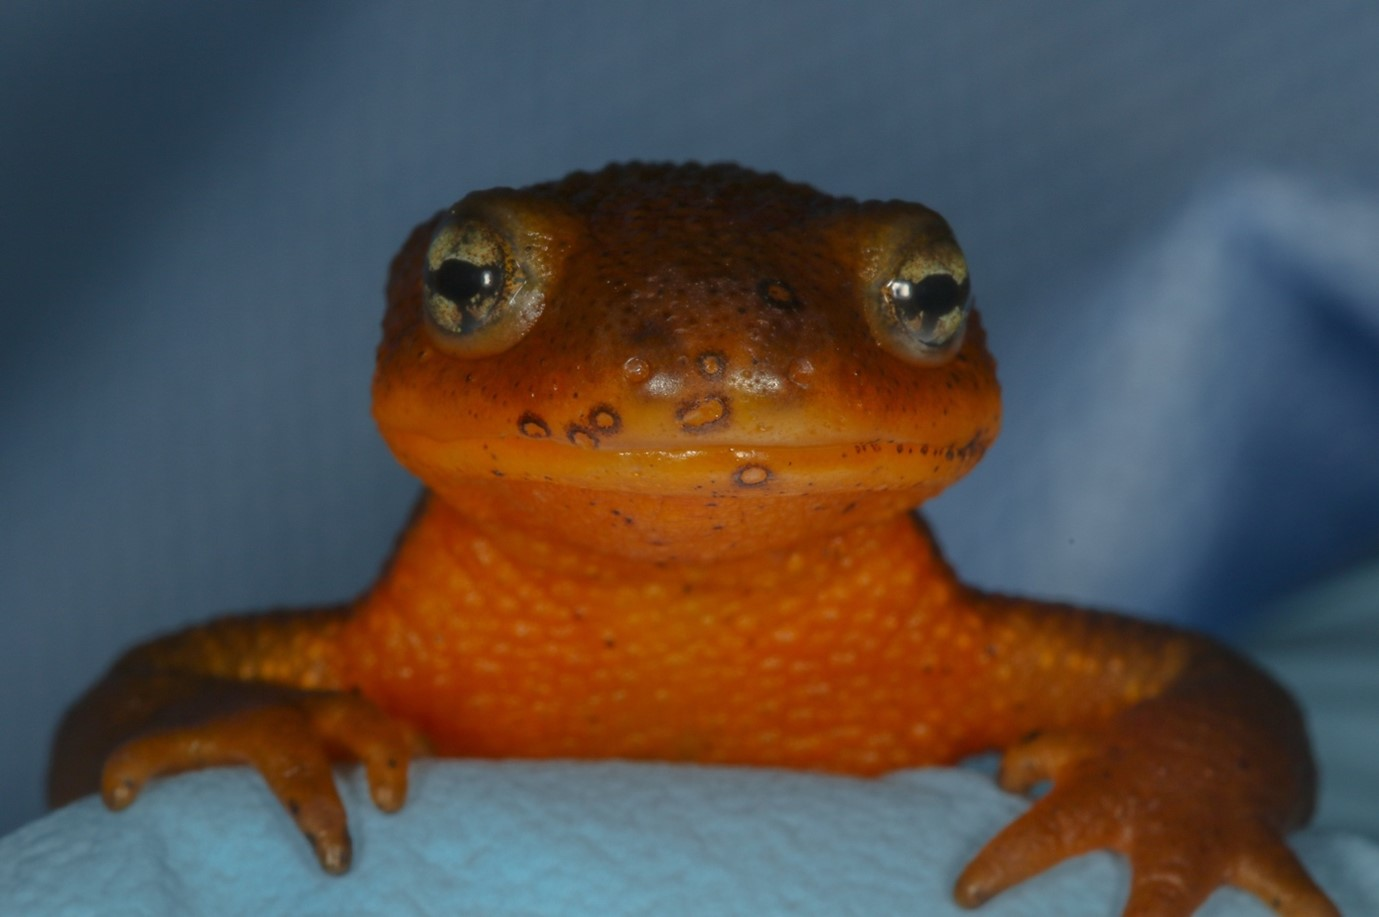 The bullseye-like lesions on the face of this roughed-skin newt (Taricha granulosa) are a result of infection with the emerging fungal pathogen Bsal (photo by Todd Amacker Conservation Visuals).